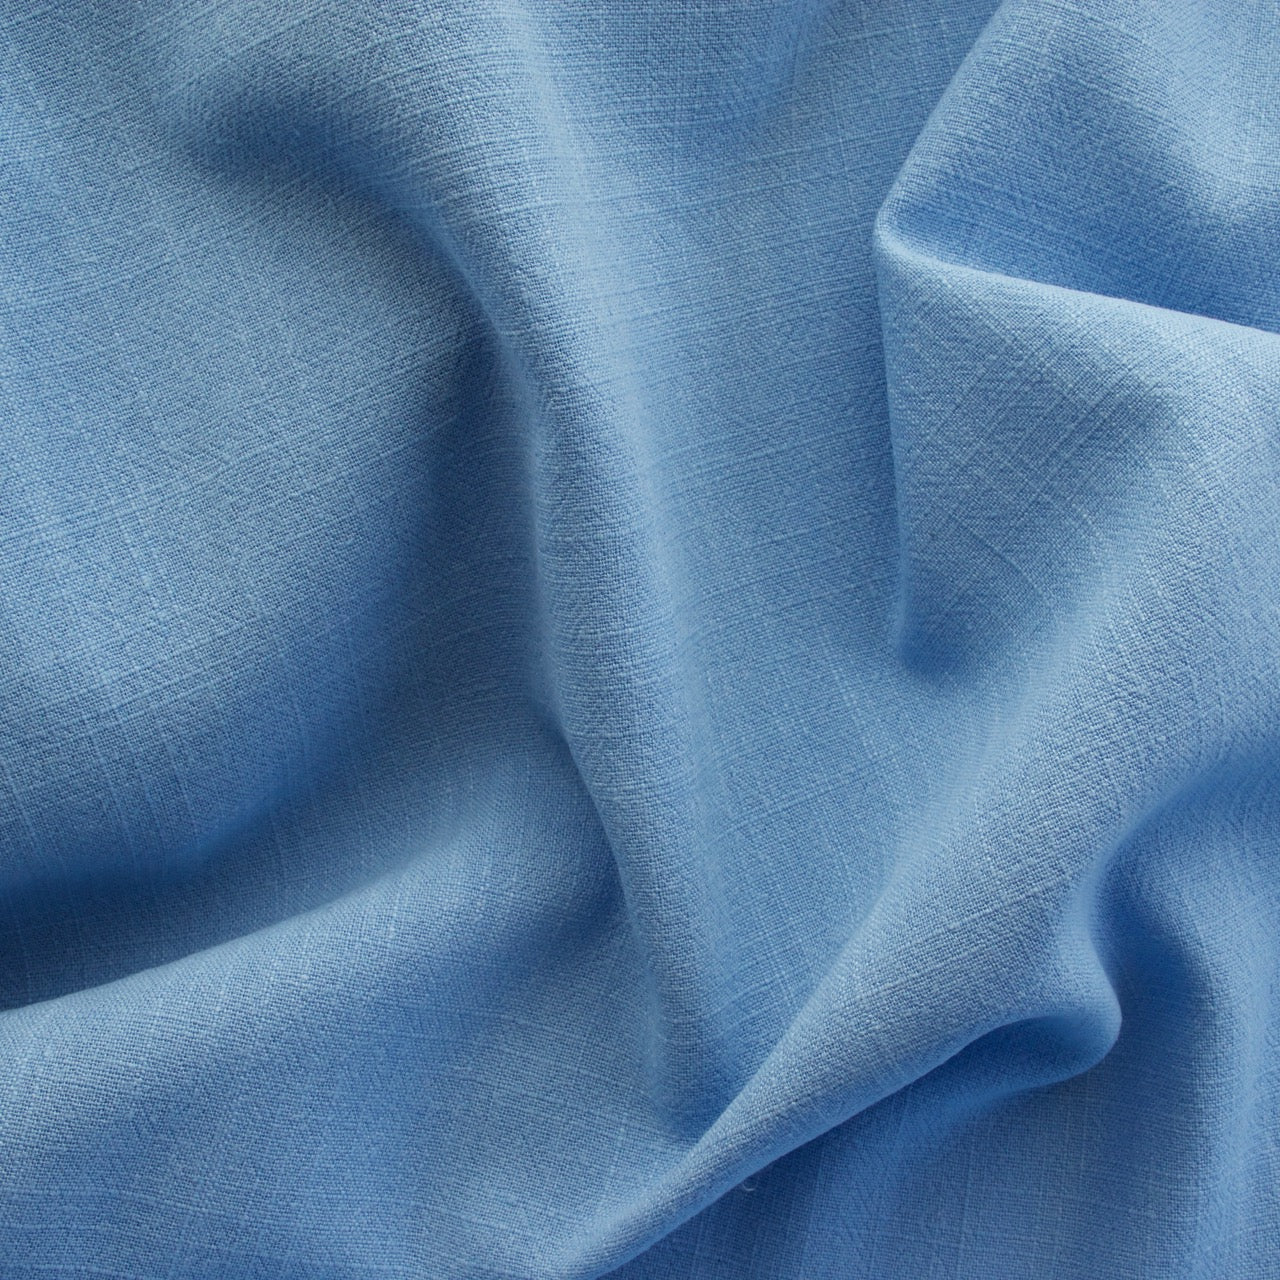 Viscose Linen Noil - Cornflower Blue - MaaiDesign